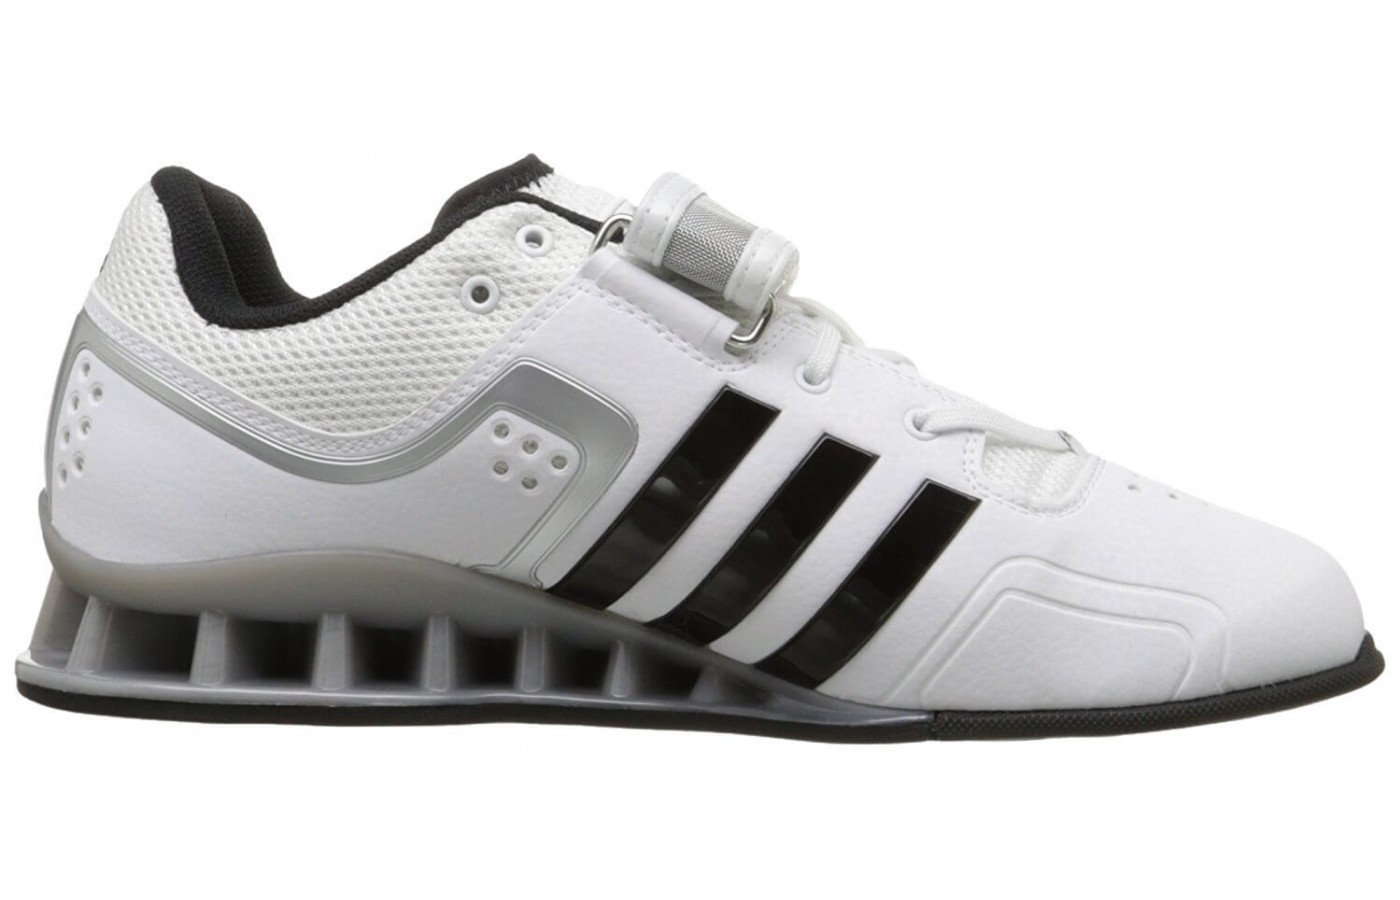 Adidas utilizes a weightlifting specific chassis in their design.